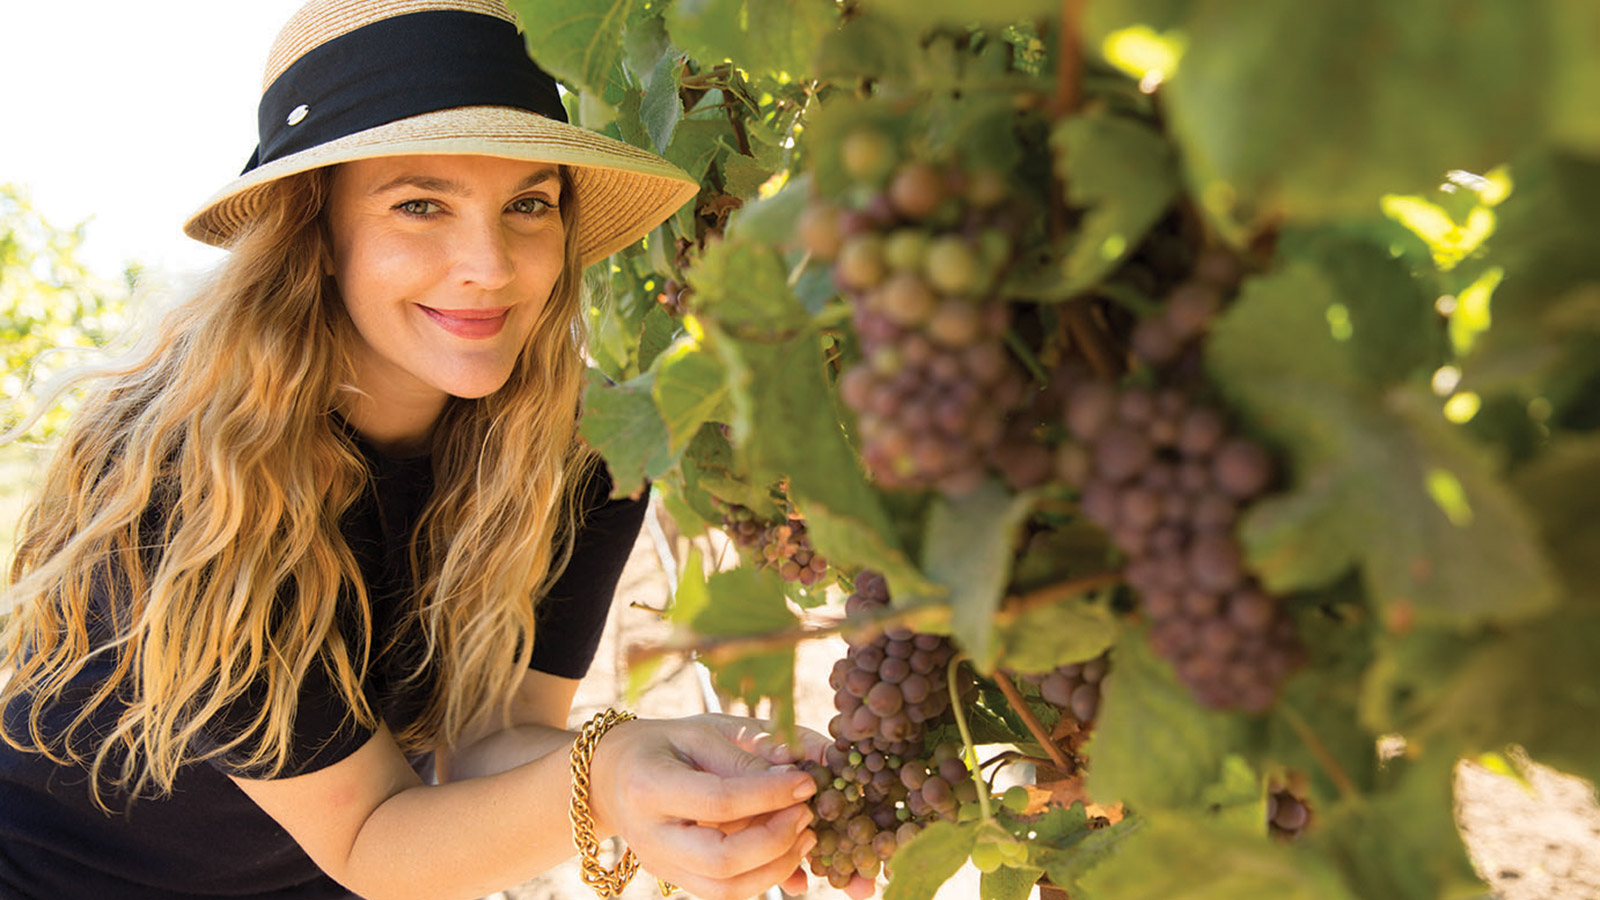 Unfiltered new wines for drew barrymore christie brinkley plus christie brinkley loves prosecco so much that shes making her own fred schrader introduces new sparky cigar and chinas silk road wine train geenschuldenfo Images